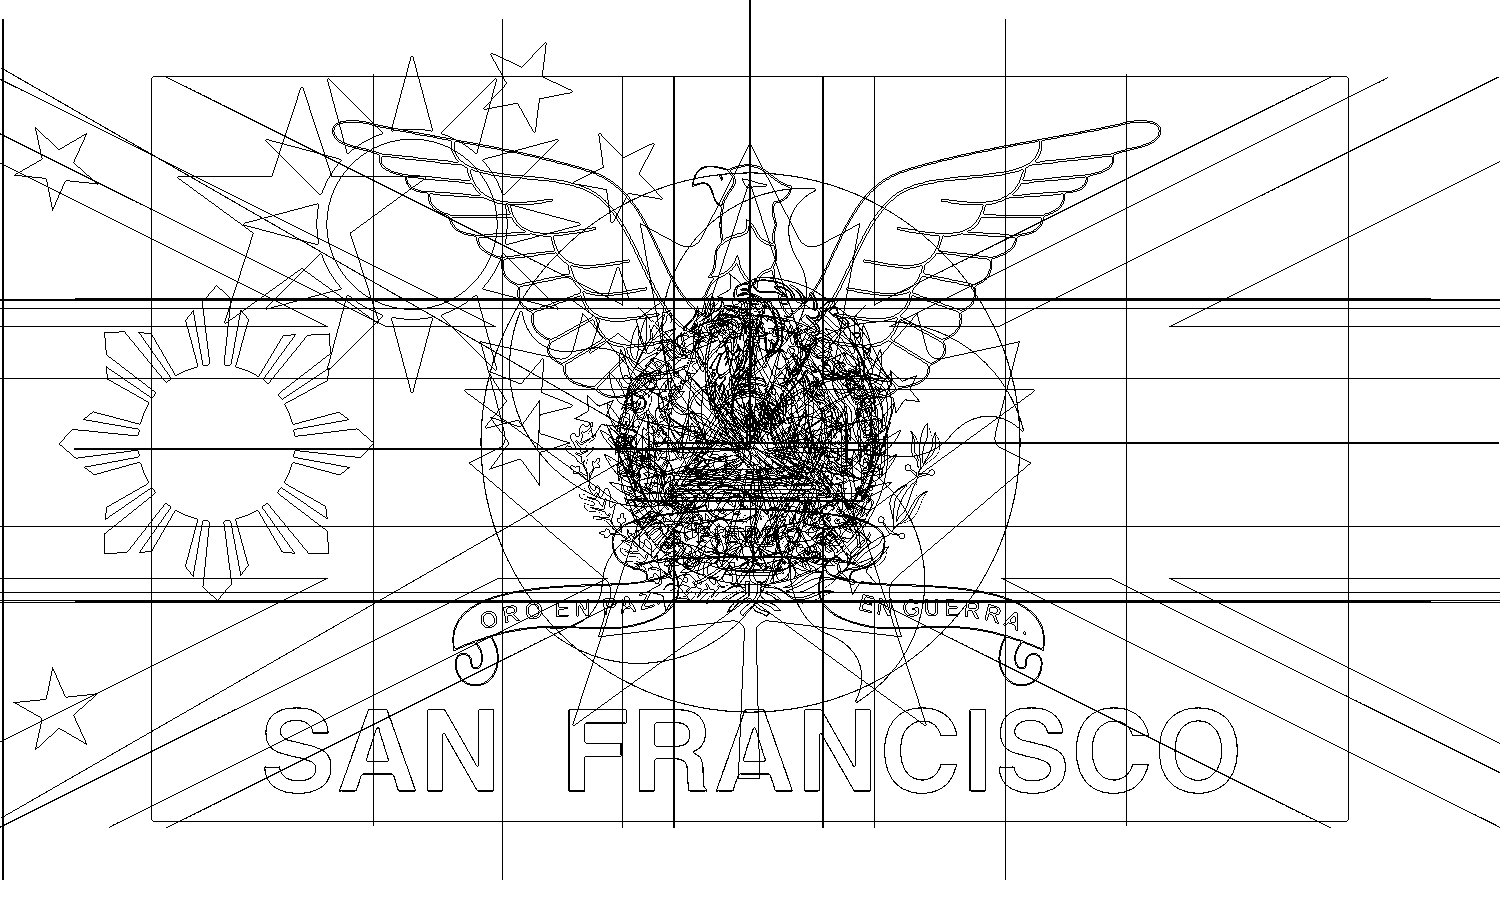 Sanctuary City, 2018, stamp, ink, edition of 300